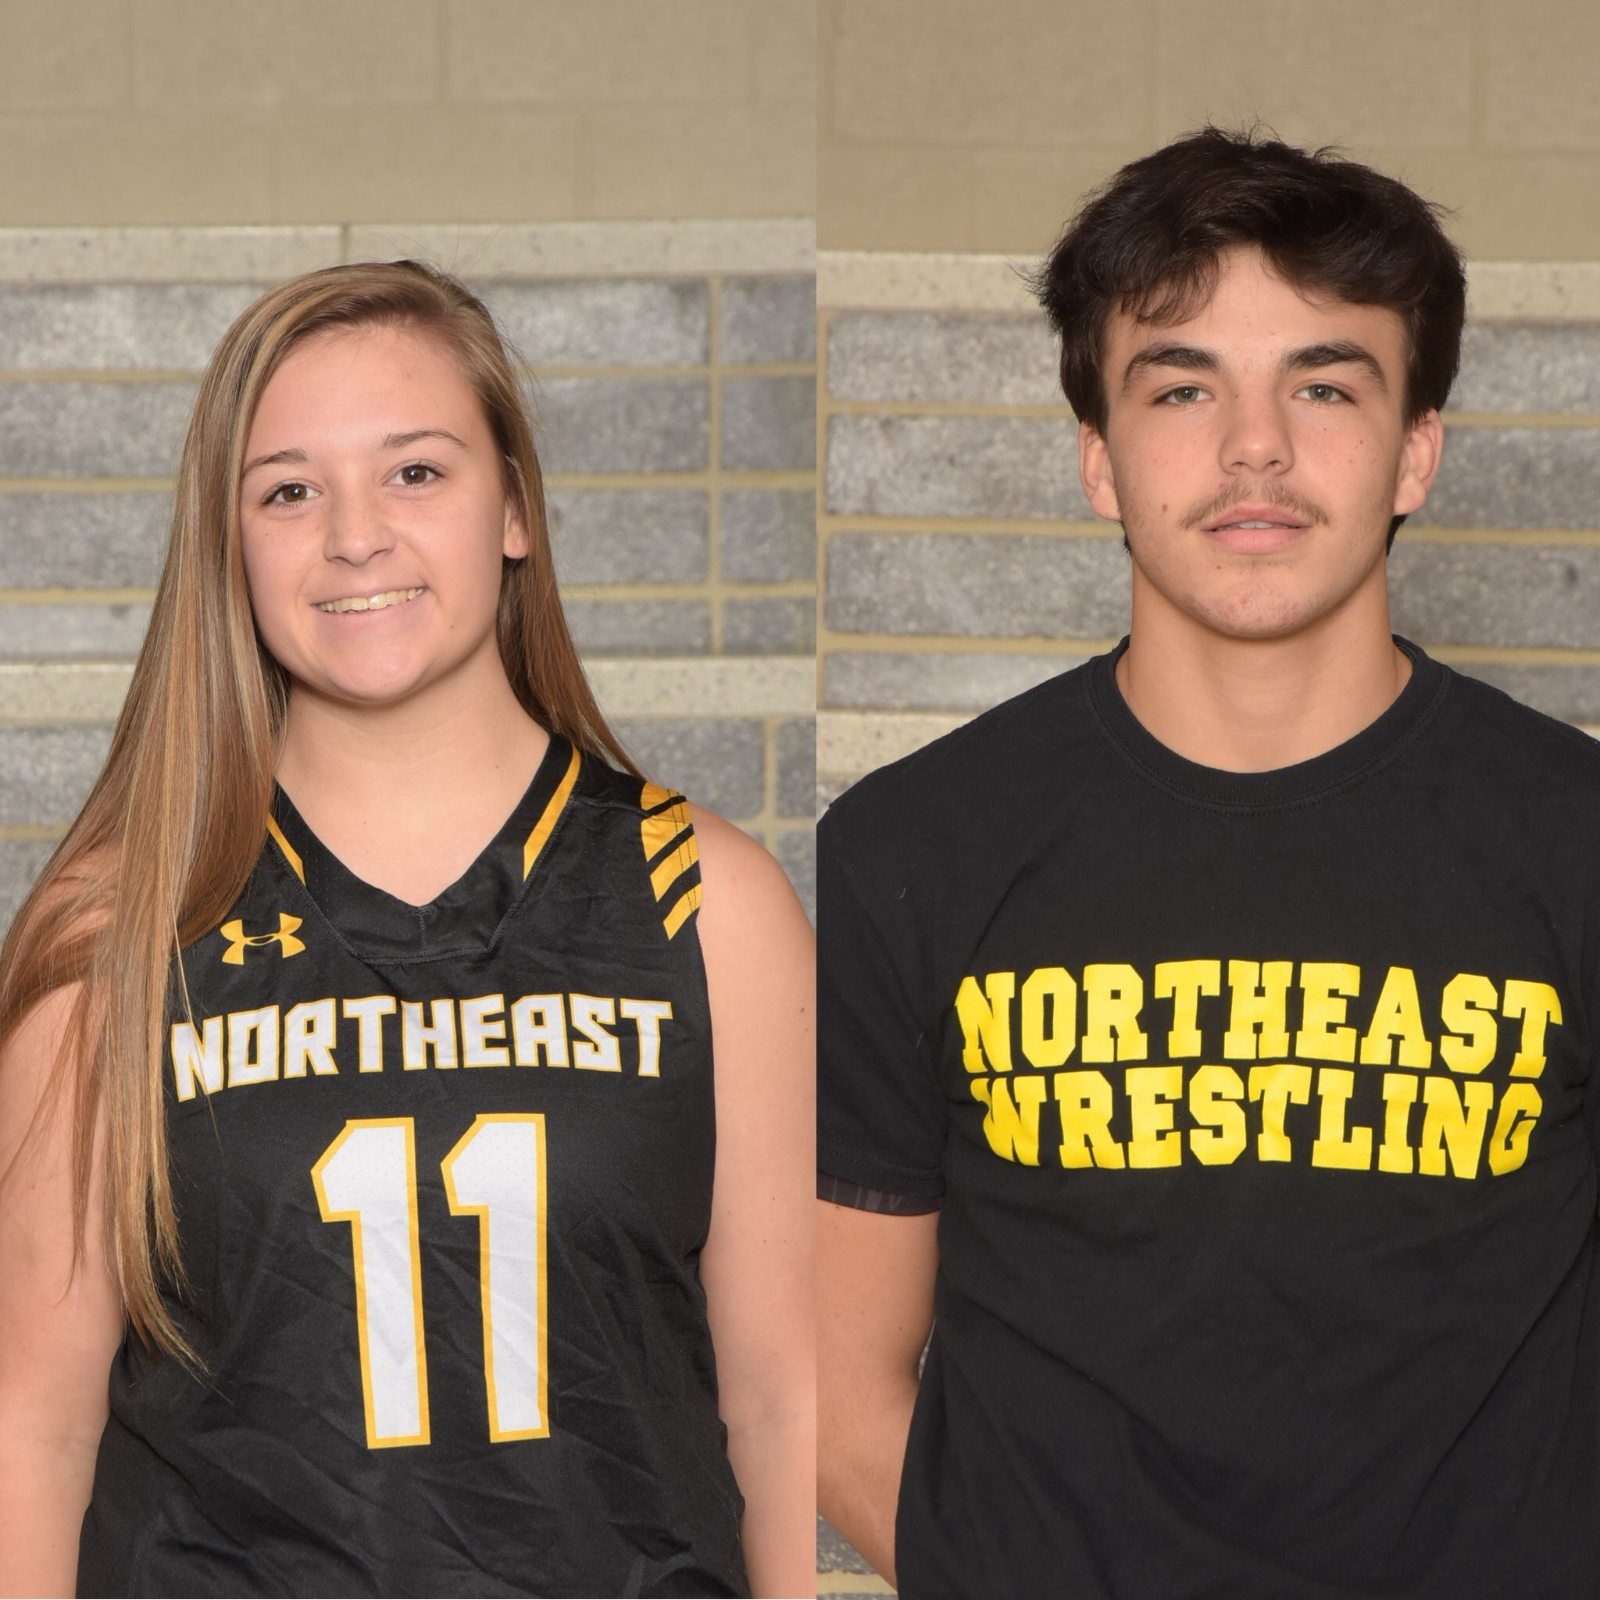 NHS Athletics December Athletes of the Month: Allyson Wills and Billy Katzenberger